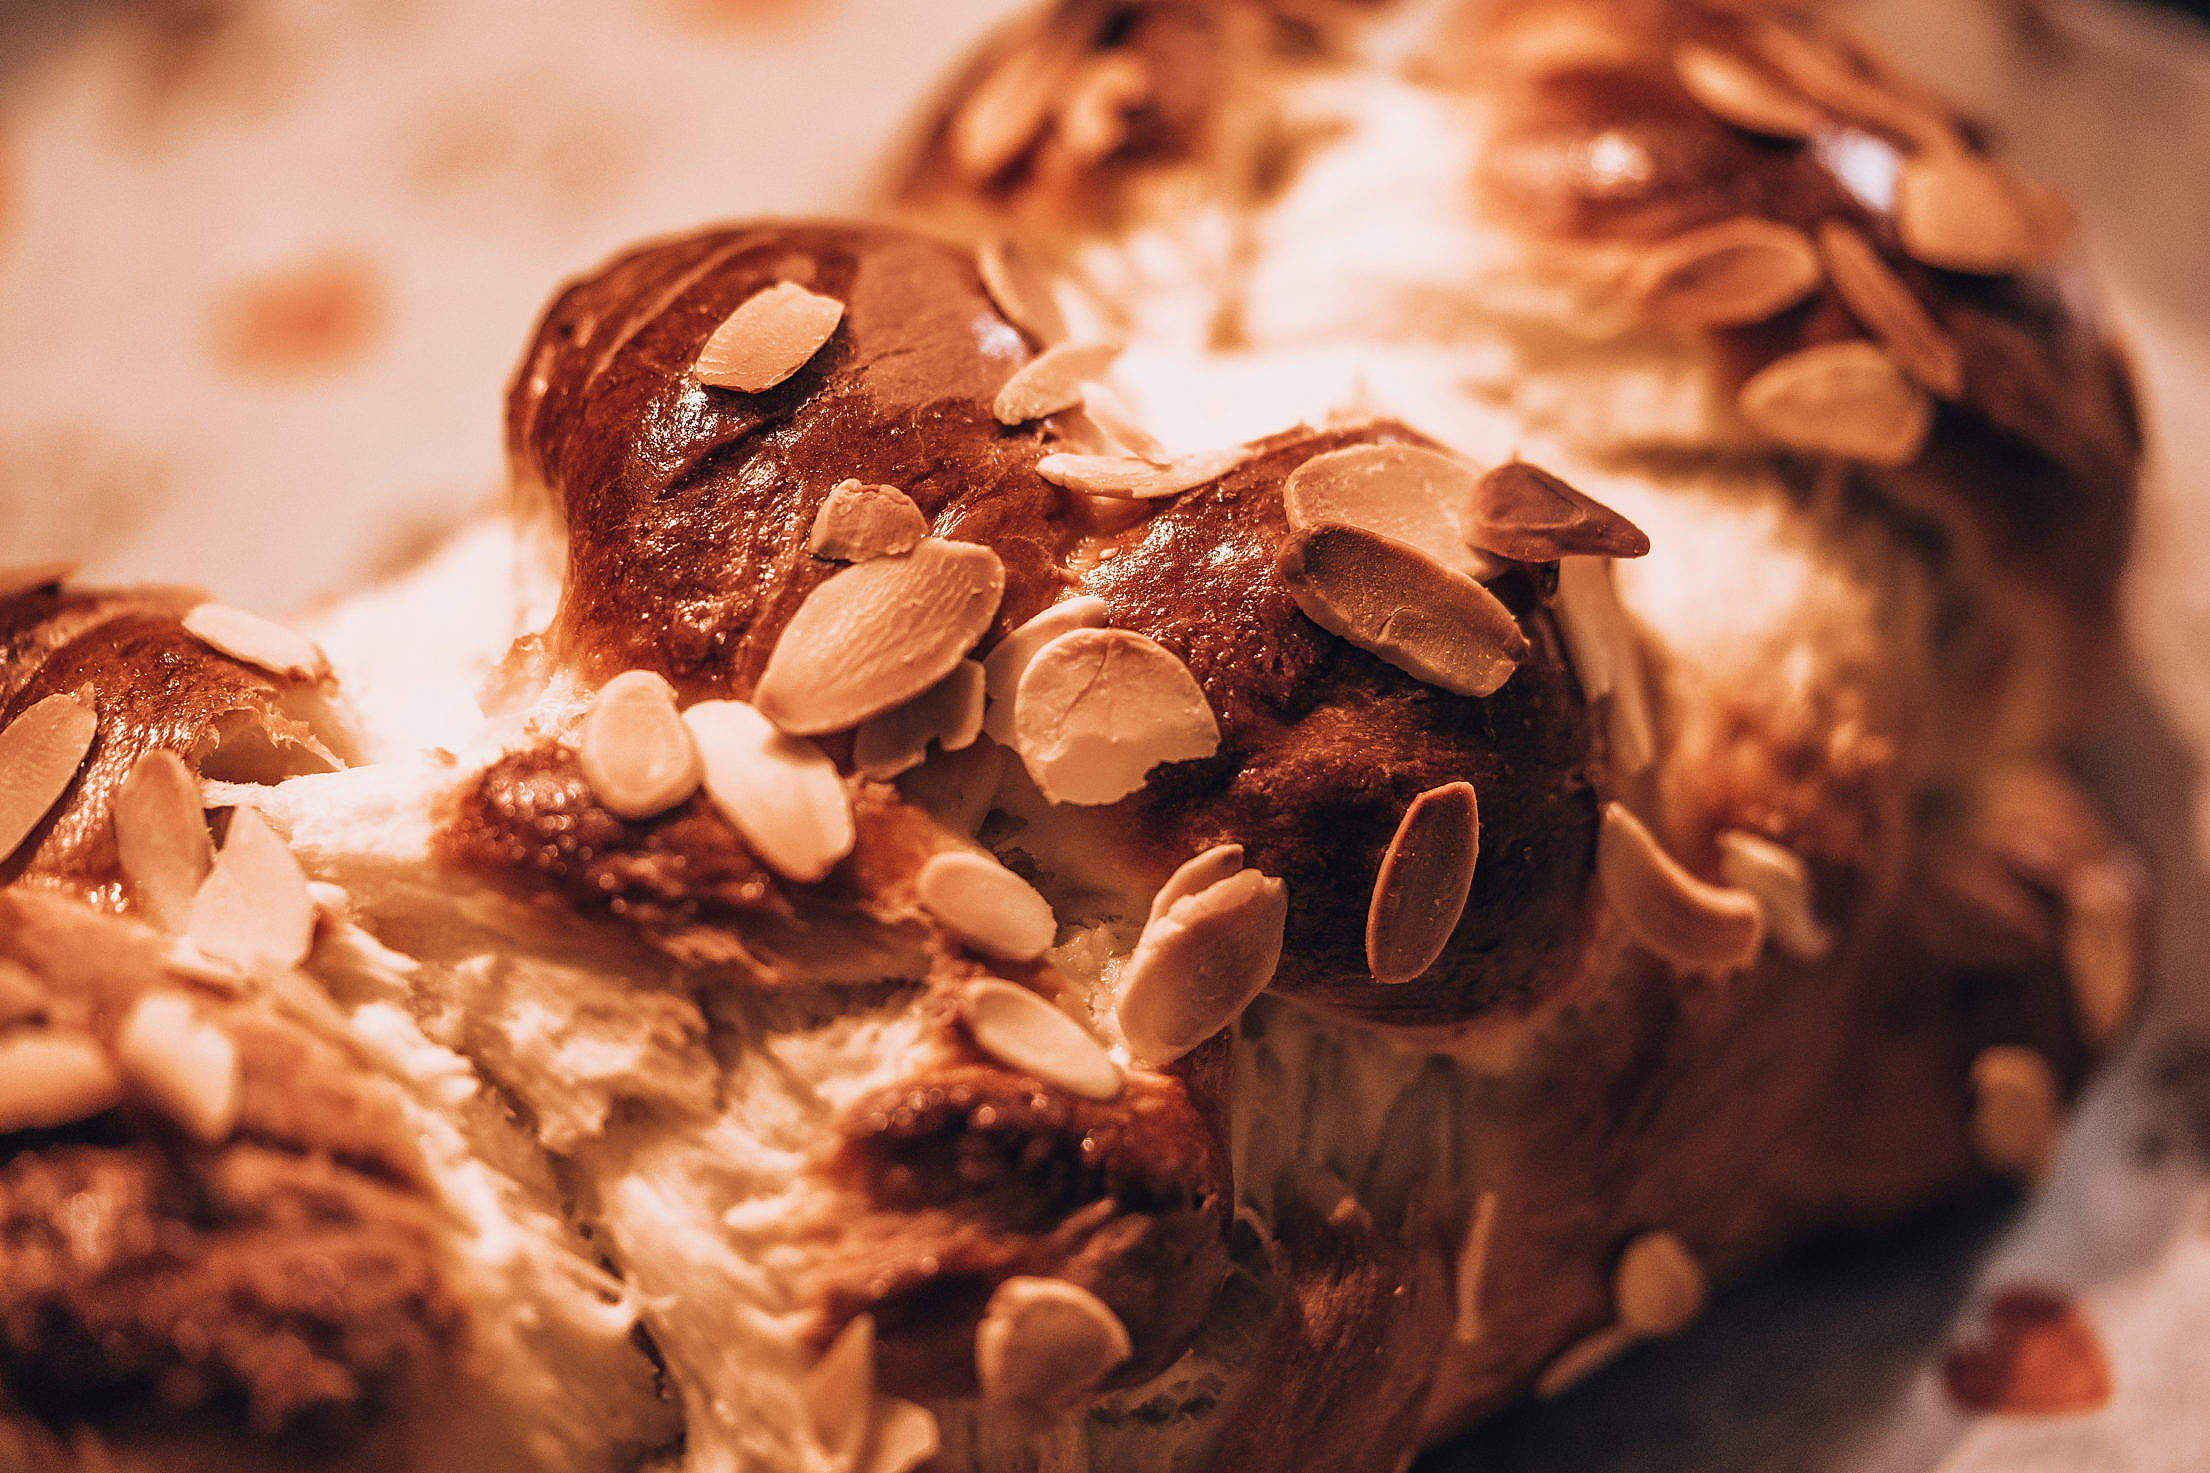 Close-up on a Sweet Fancy Bread Free Stock Photo